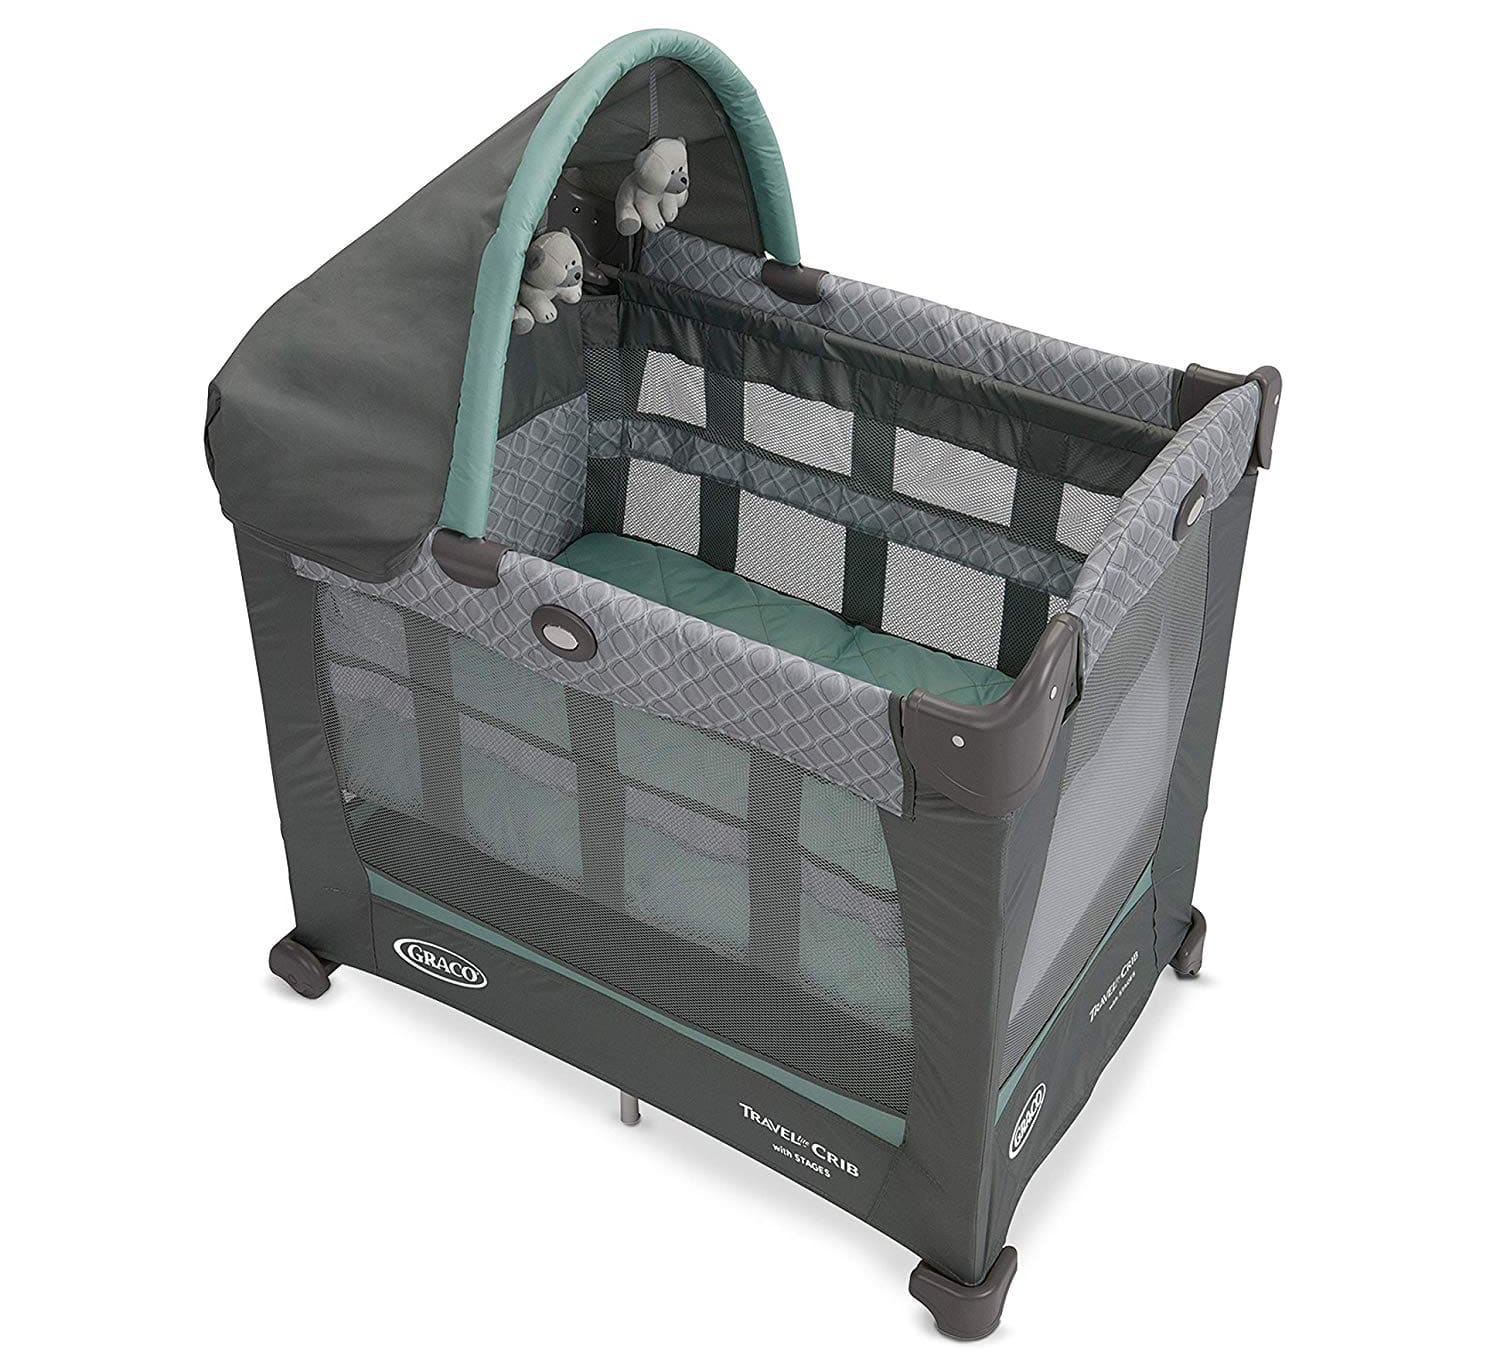 Graco Travel Lite Crib | Travel Crib Converts from Bassinet to Playard